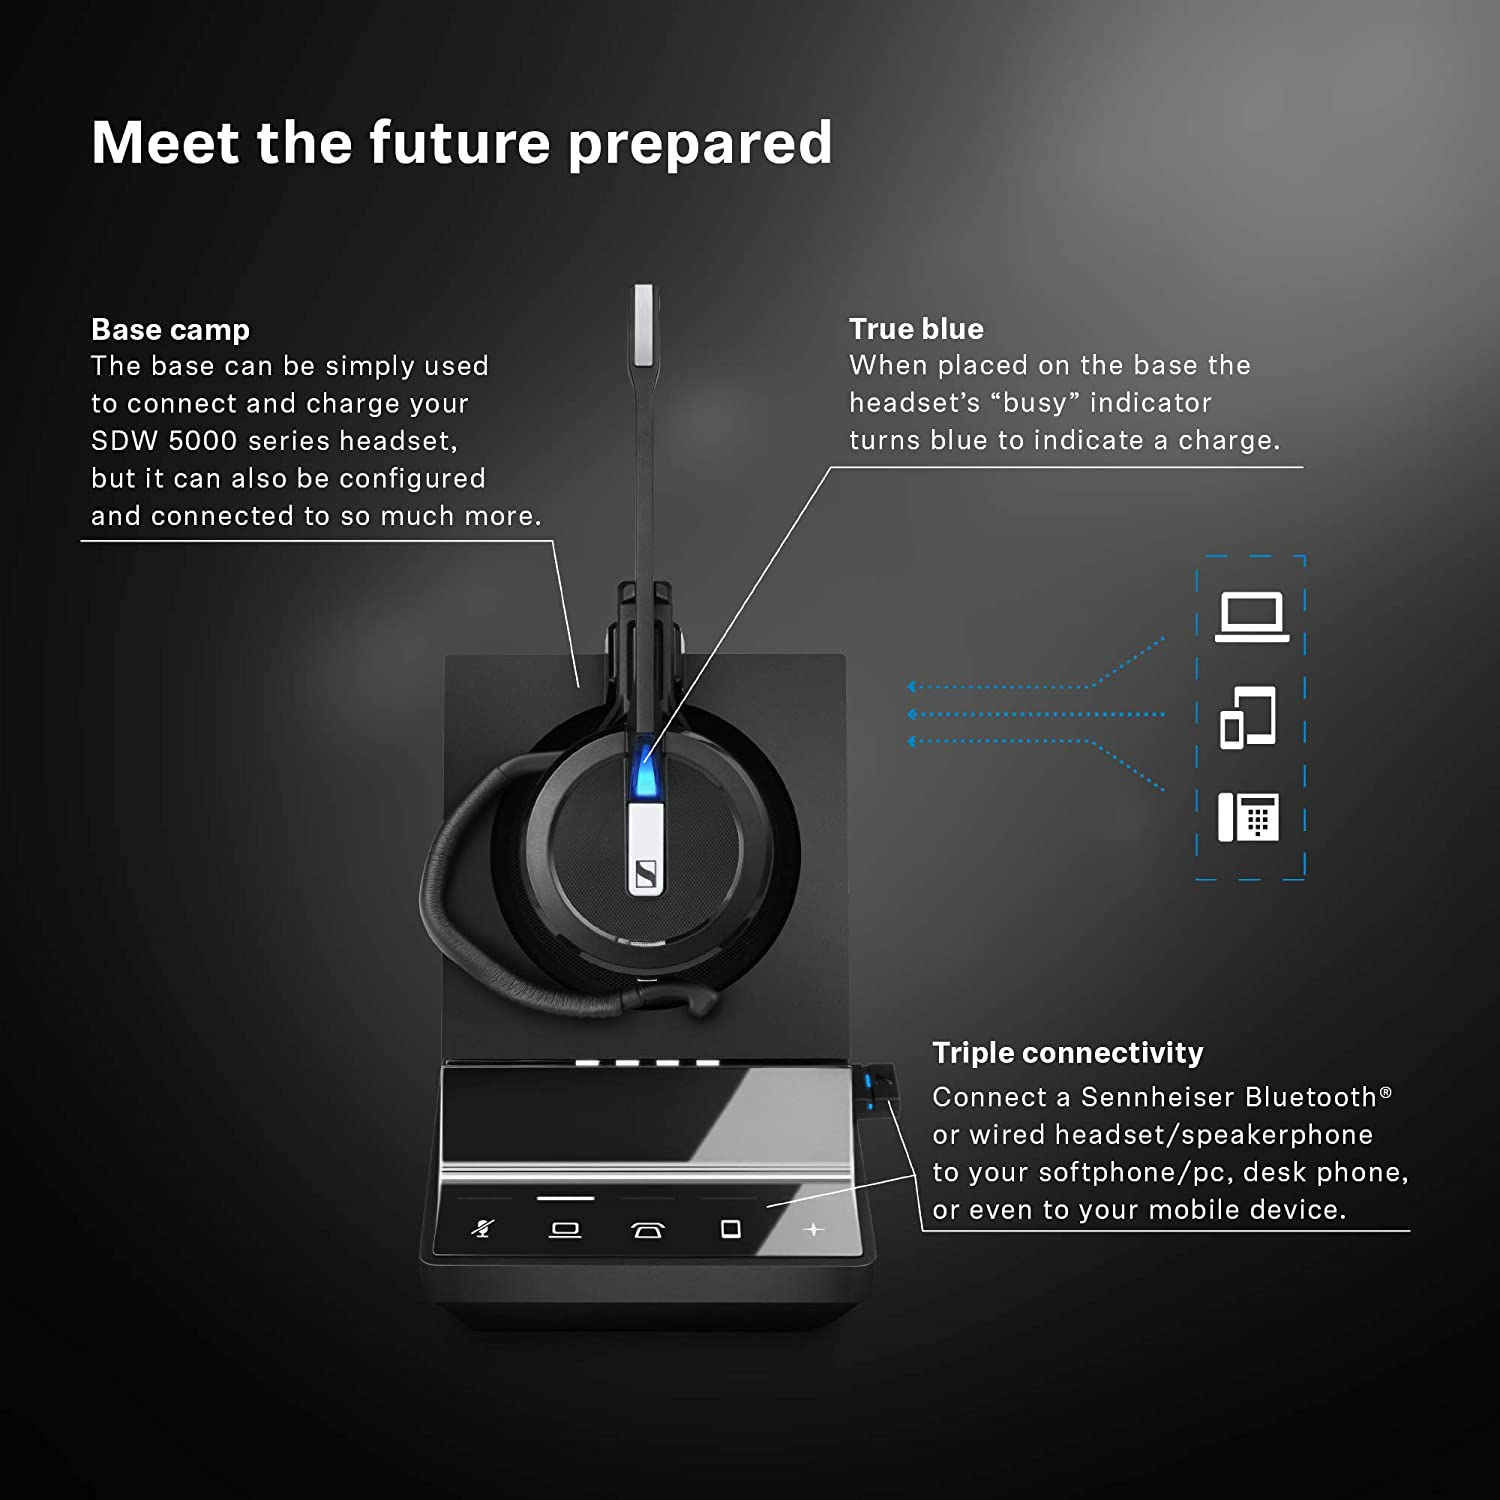 Sennheiser Enterprise Solution Sdw 5016 Single Sided Wireless Dect Microphone Wiring Diagram Headset Desk Phone Softphone Pc Mobile Connection Dual Ultra Noise